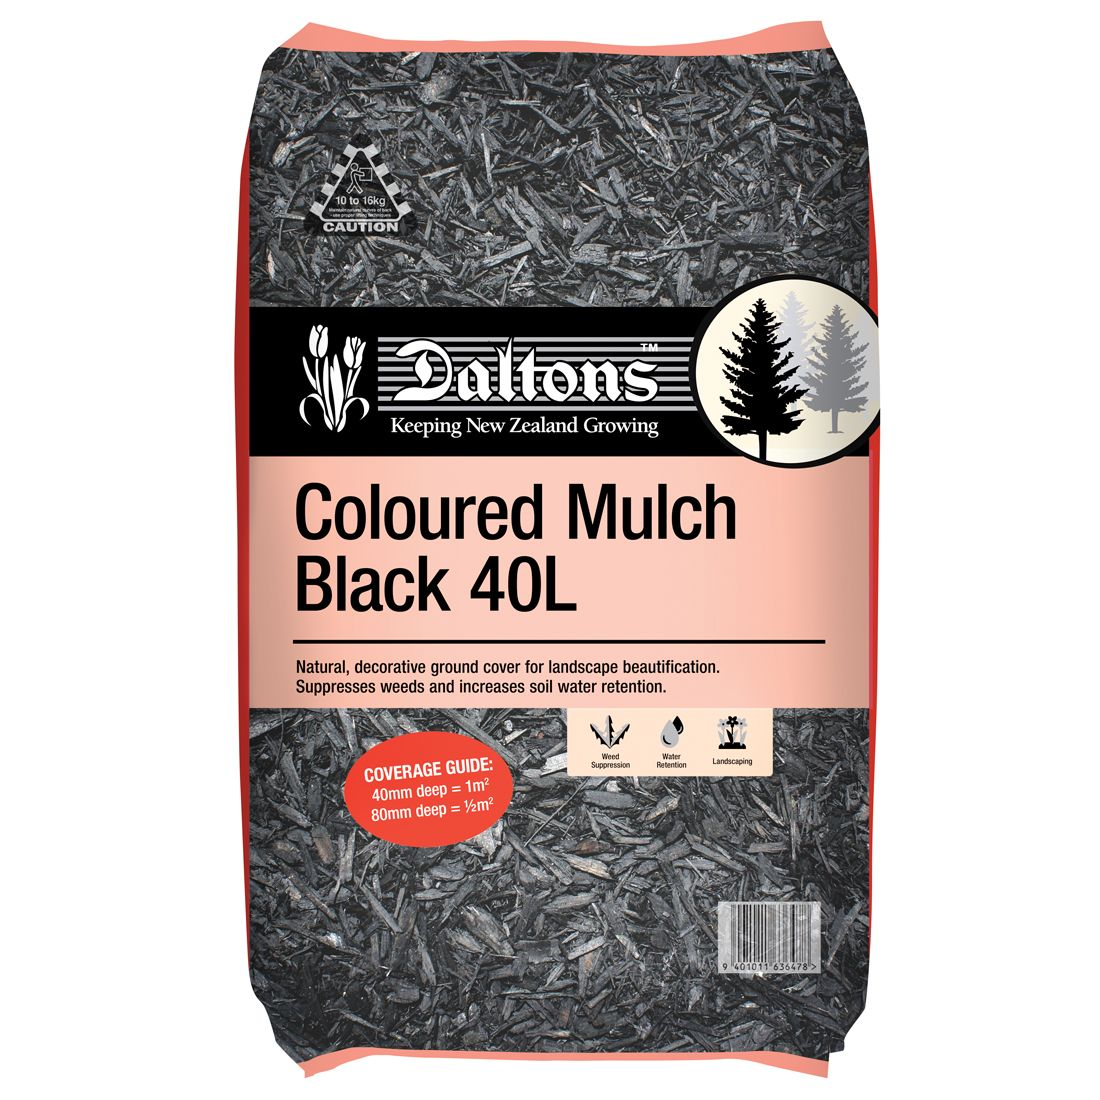 Coloured Mulch Black 40L Bag